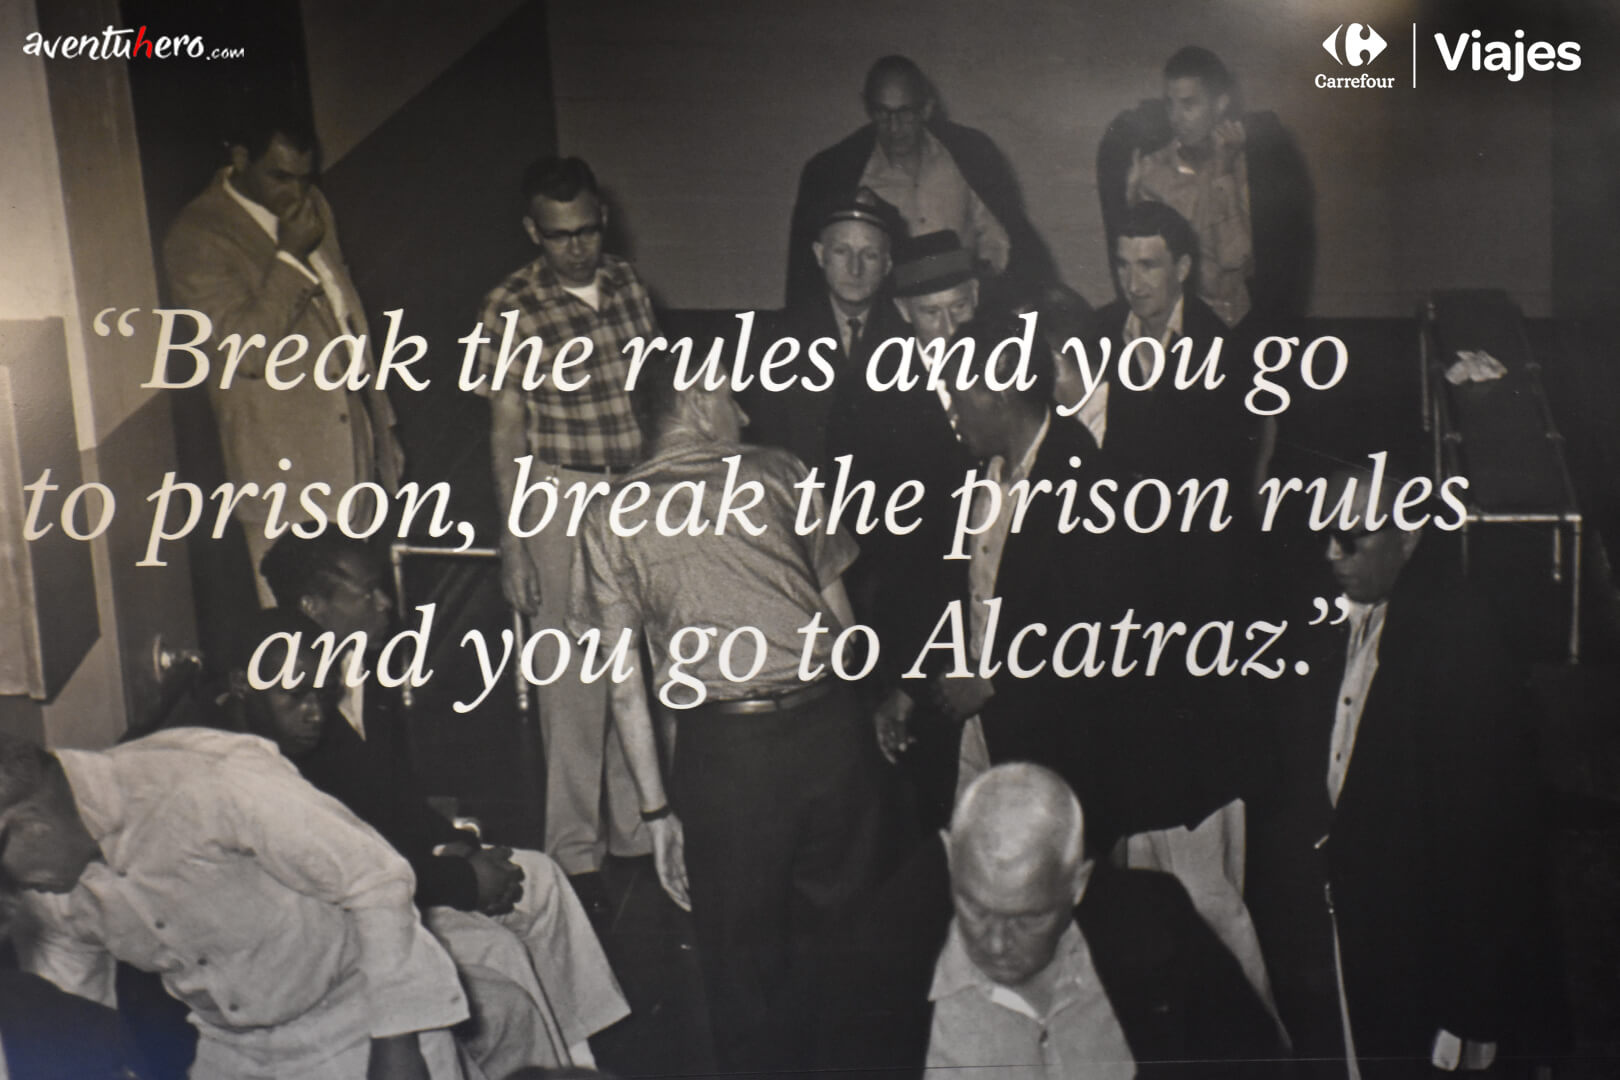 Alcatraz - If you break the rules